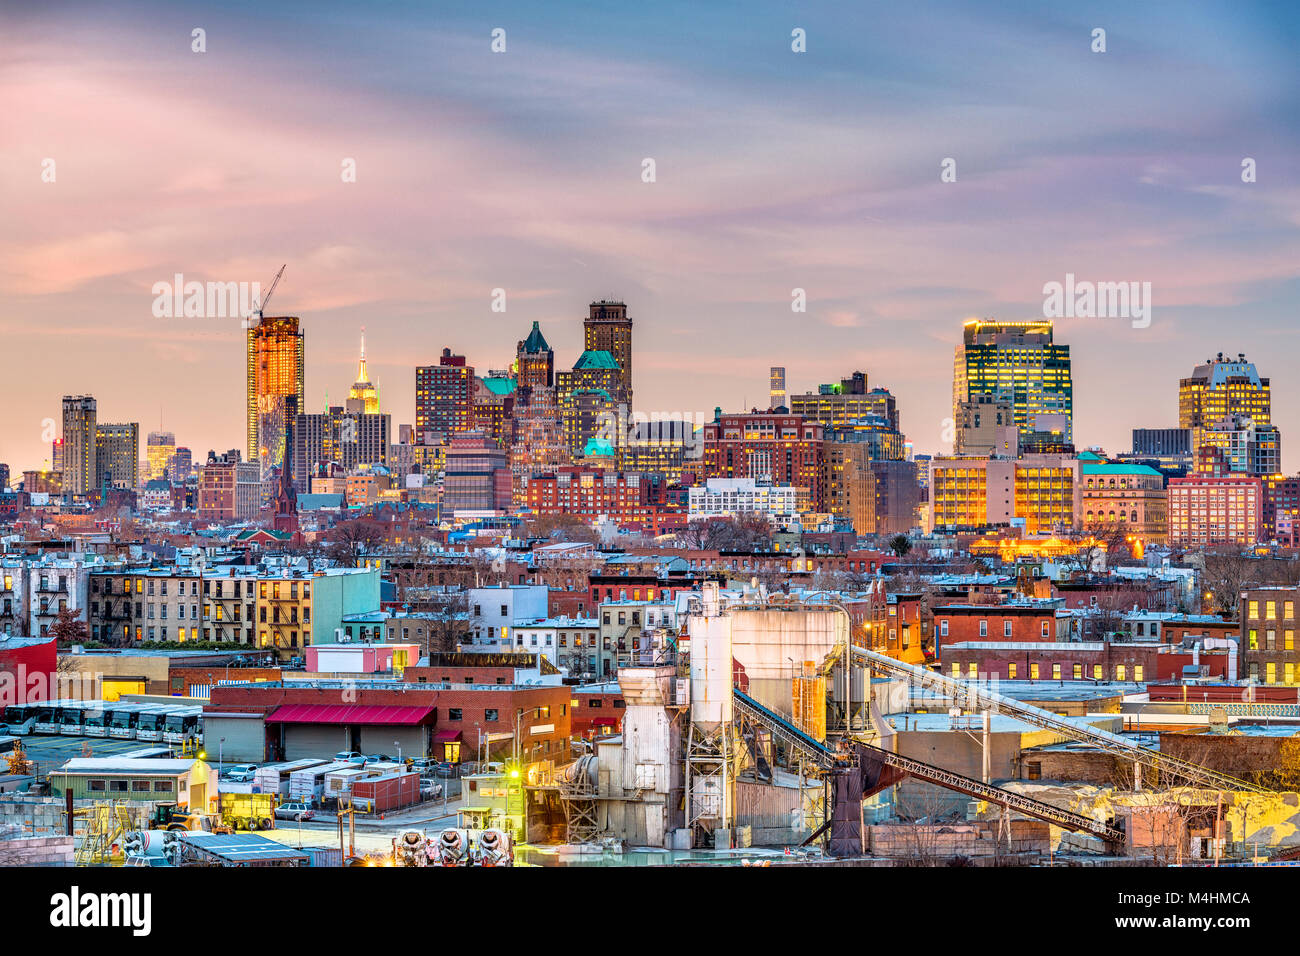 Brooklyn, New York, USA skyline with industrial areas at dusk. - Stock Image